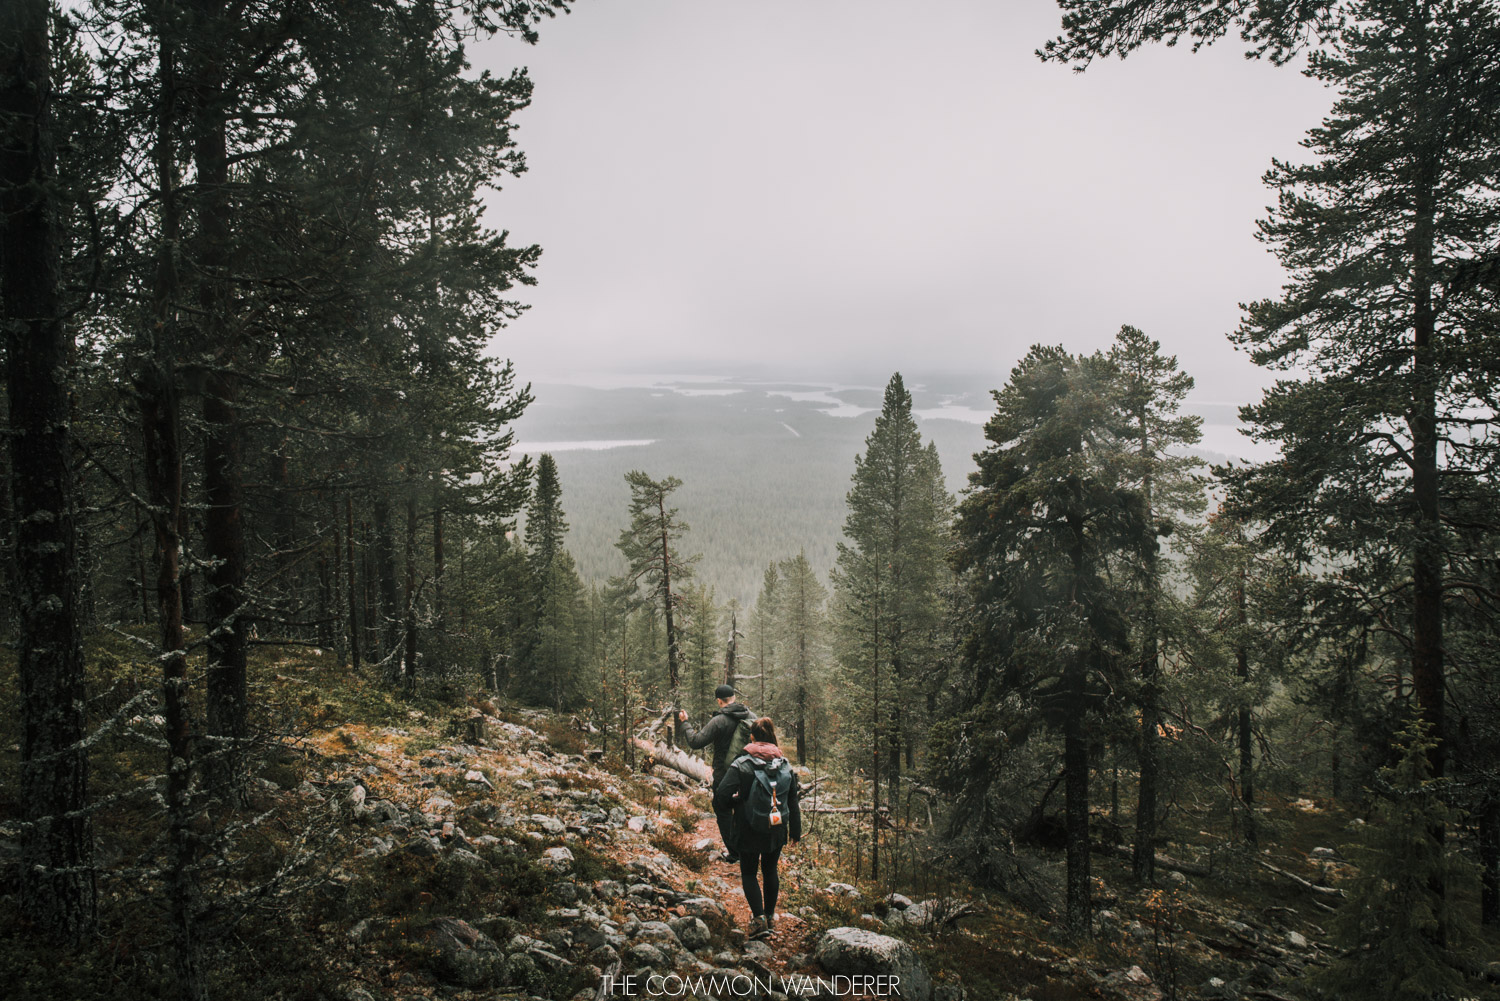 Hiking in the forest outside of Arjeplog, Swedish Lapland